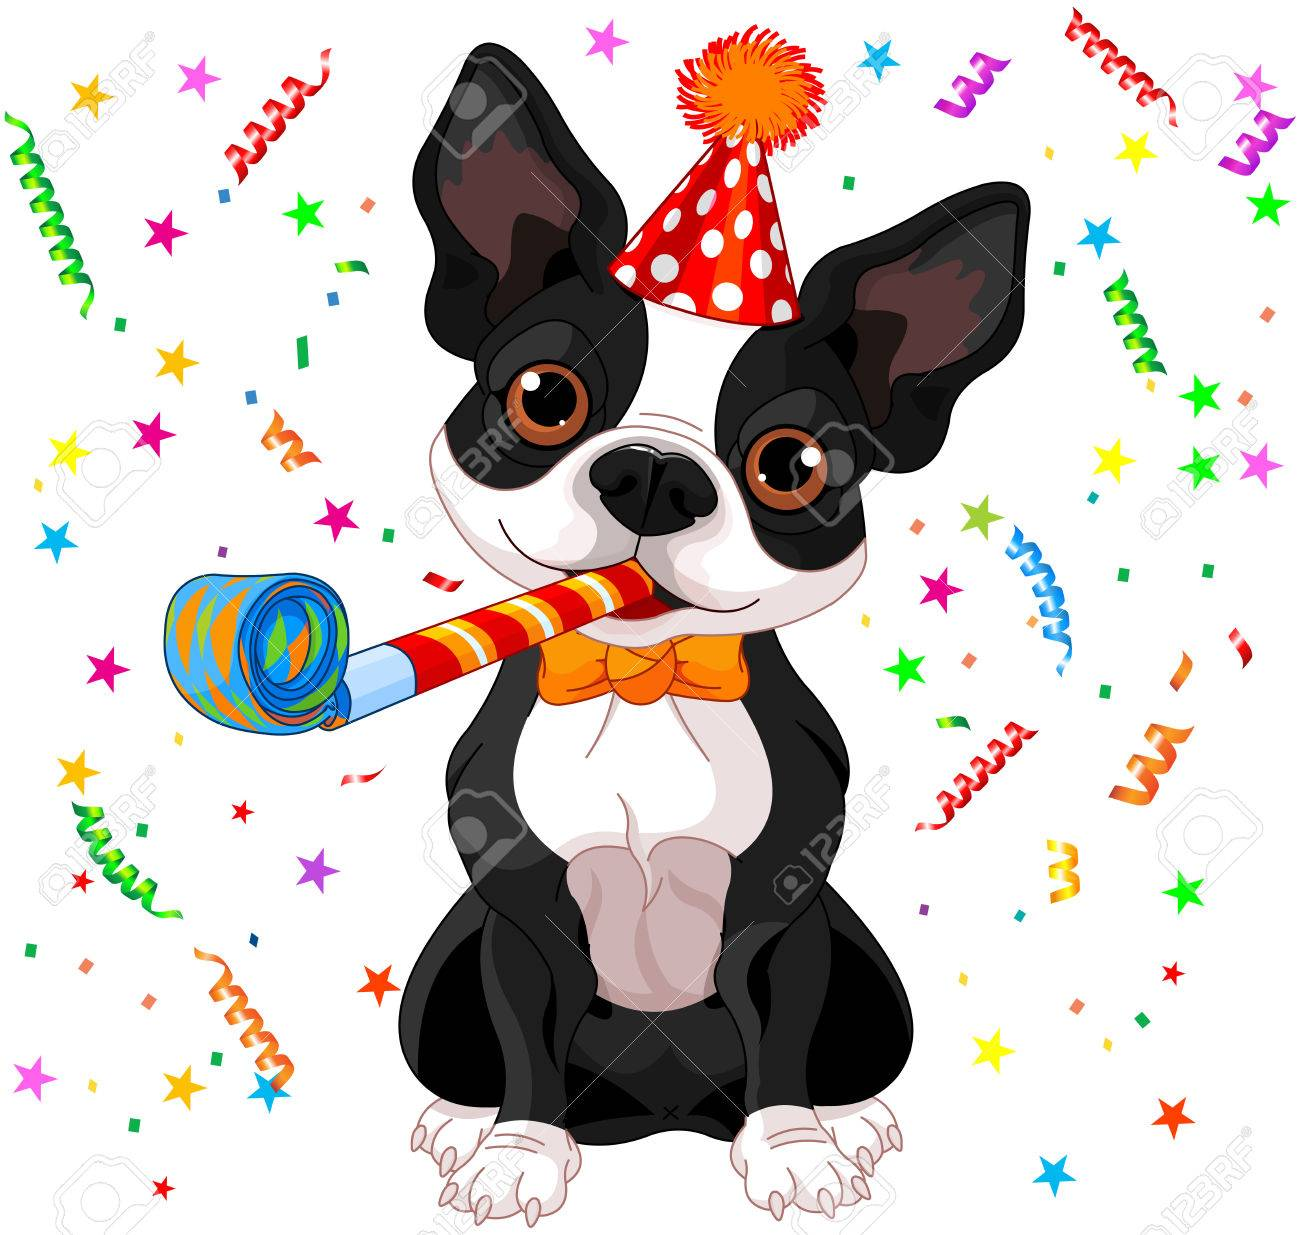 Malice Animale 35588778-illustration-of-cute-boston-terrier-celebrating